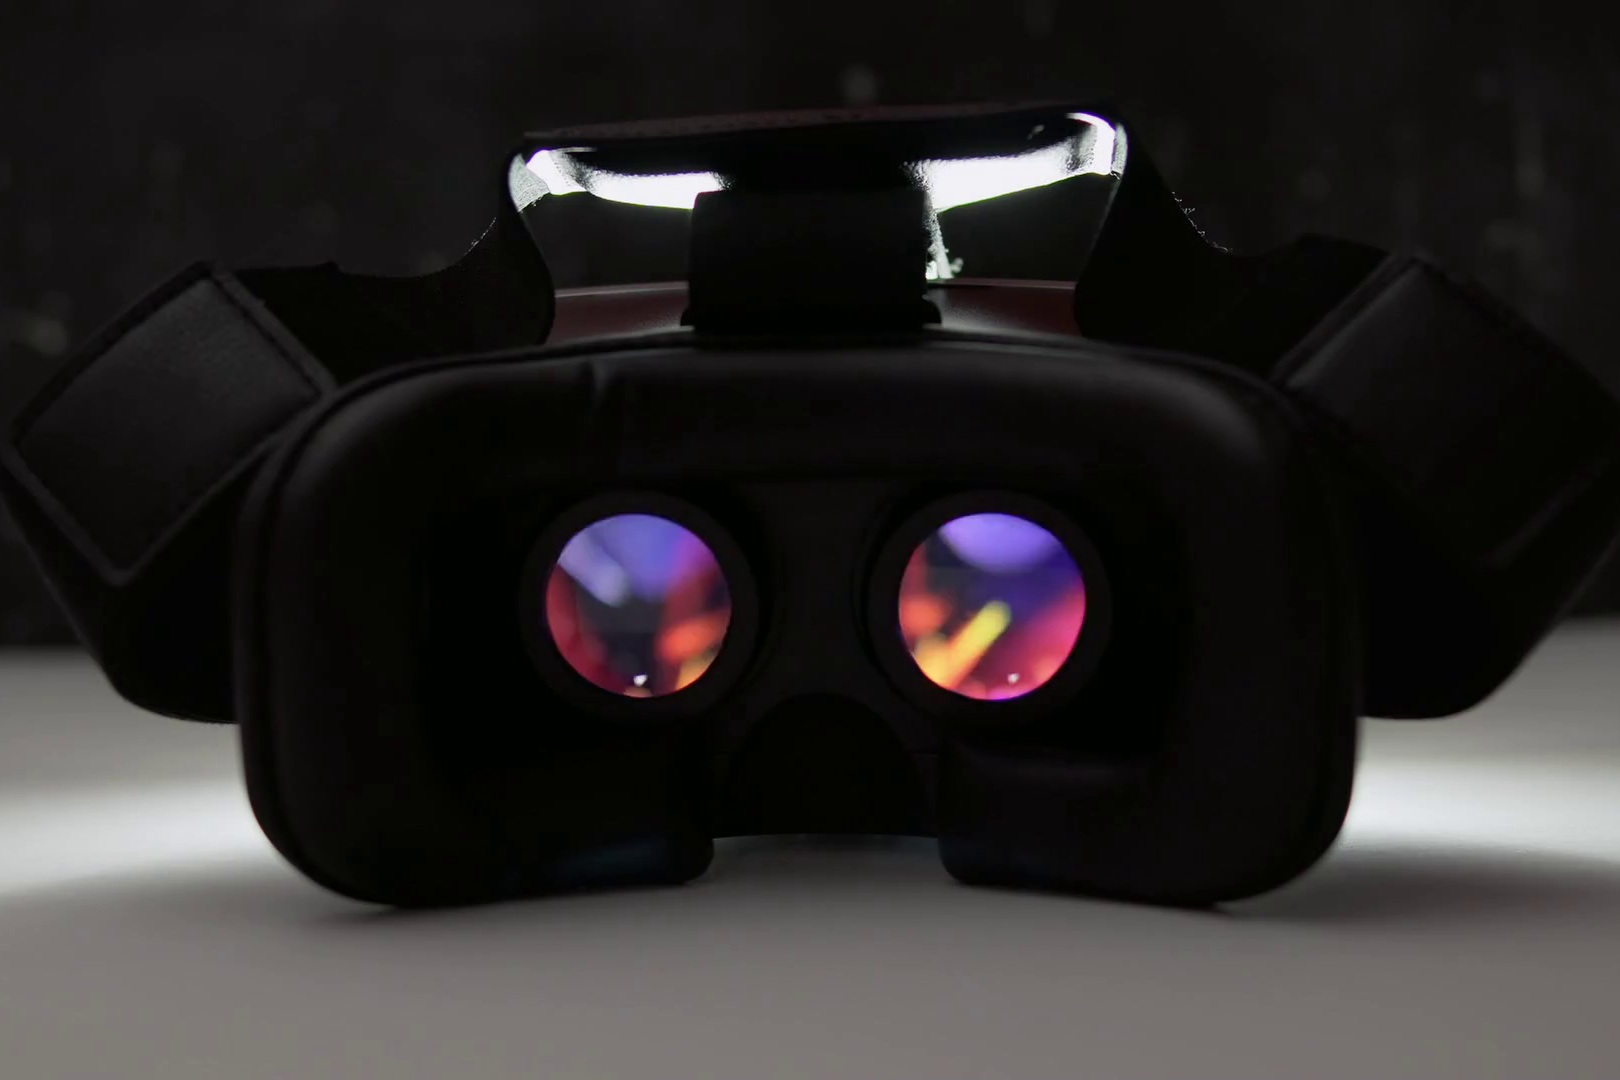 videoblocks-movie-playing-inside-virtual-reality-device-at-night-indoor-on-white-table-and-dark-background-black-vr-goggles-modern-technologies-concept-4k-uhd-video_h6wzp6eyz_thumbnail-full01.jpg